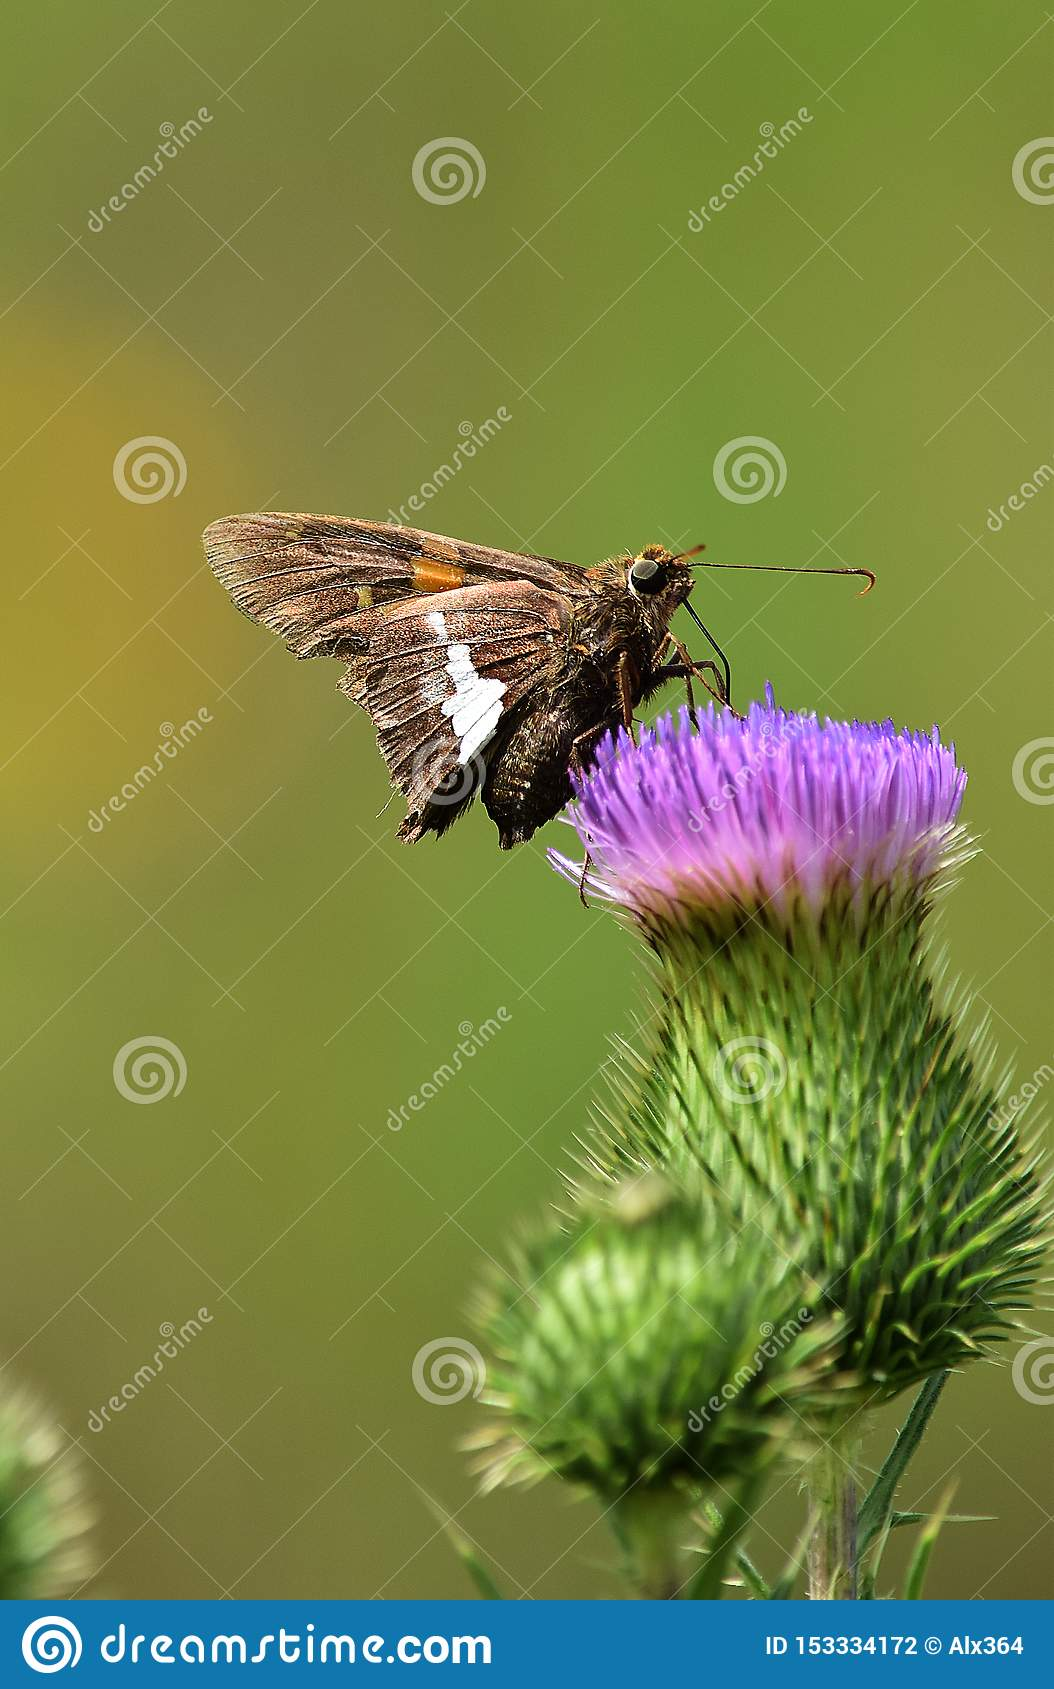 Hopper Butterfly on Thistle